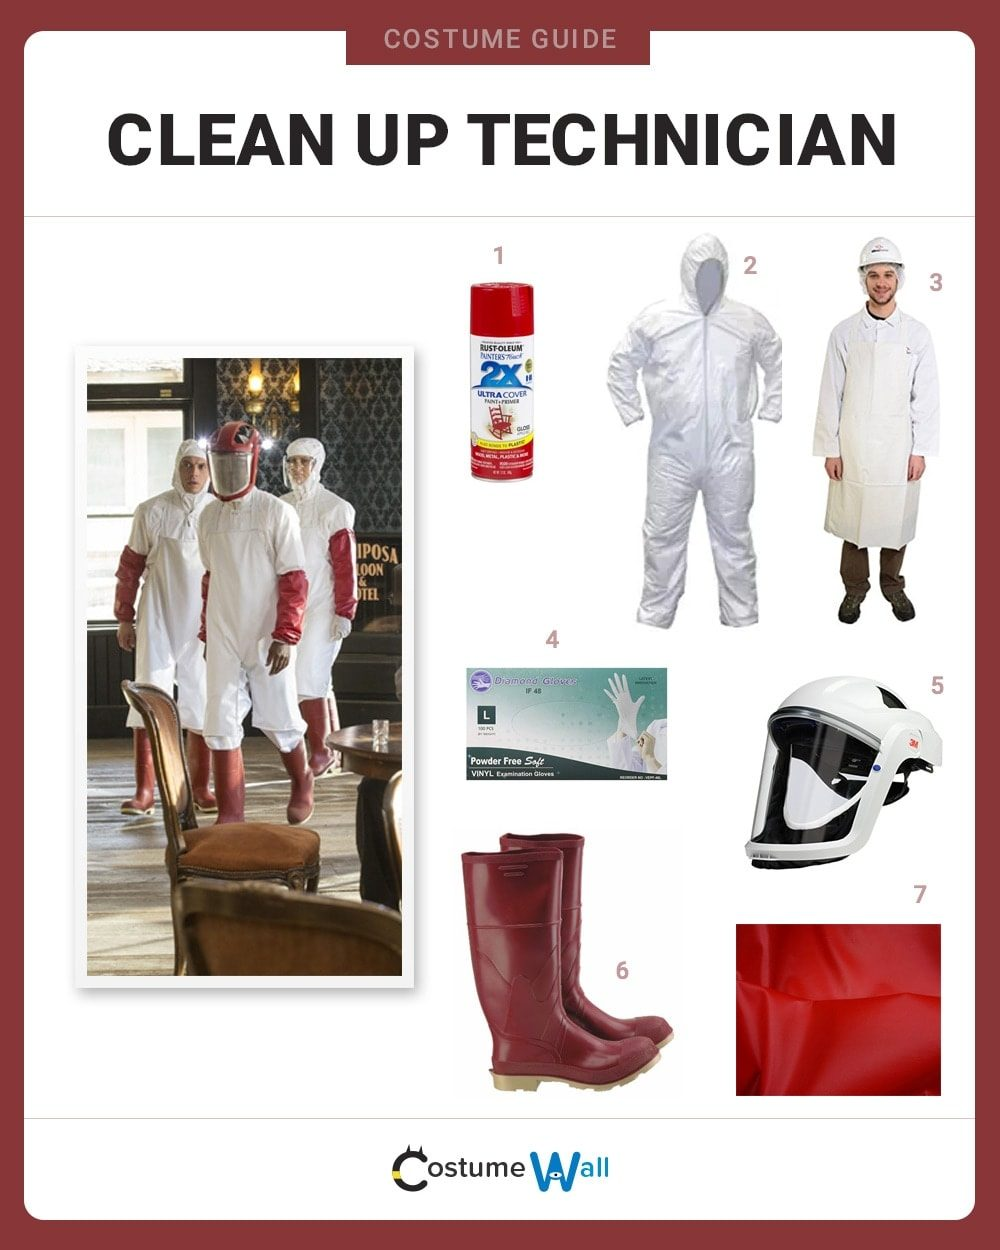 Clean Up Technician Costume Guide